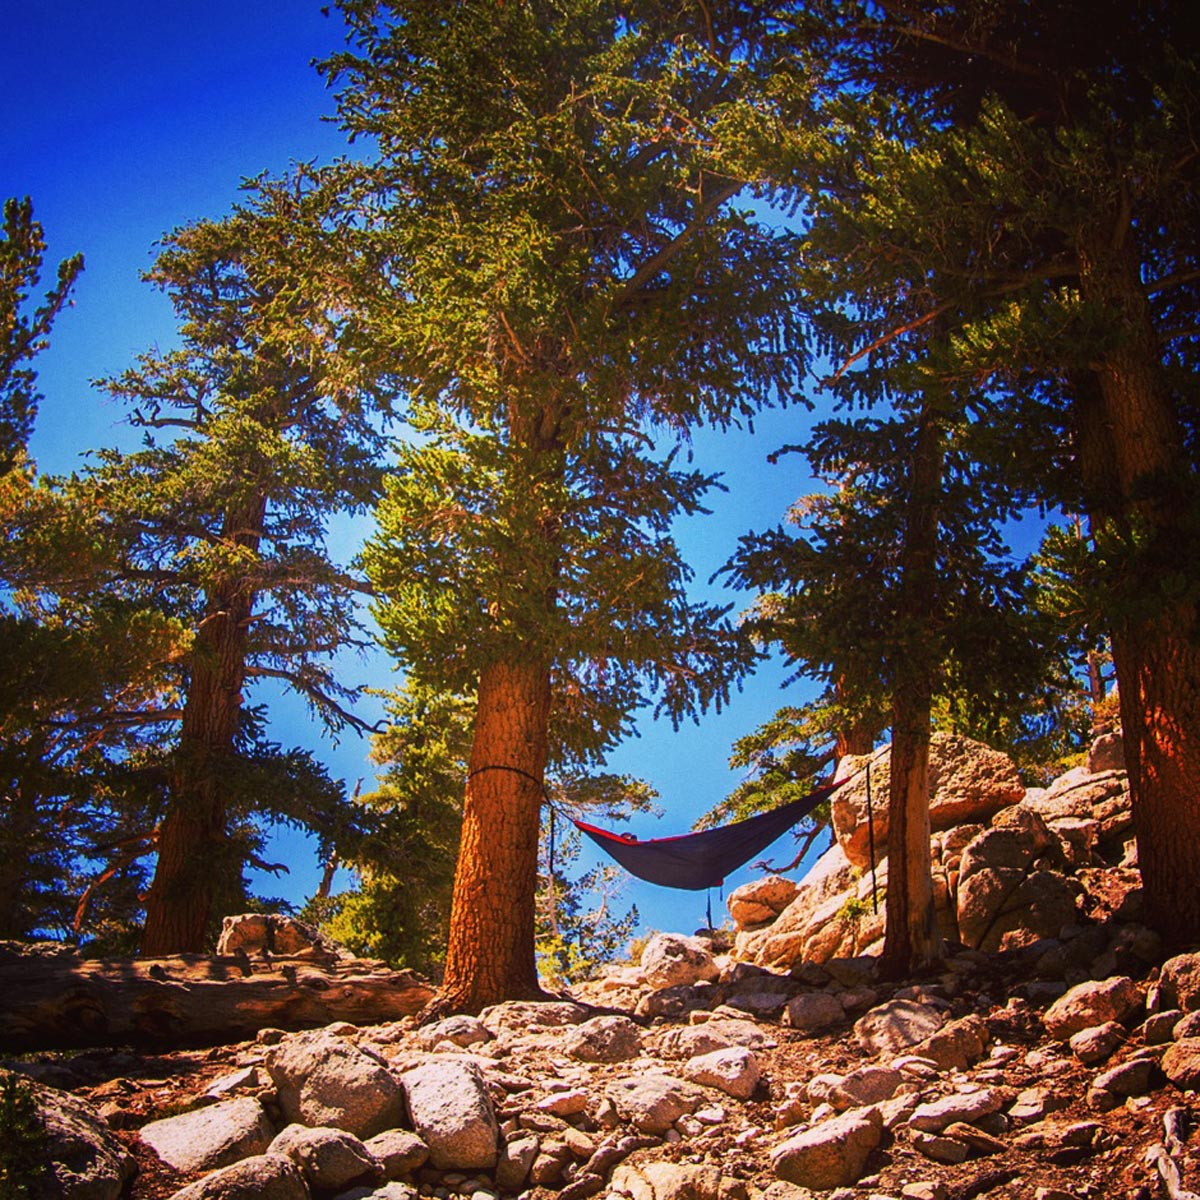 Strodel says it's easy to lose half a day in the Eastern Sierras once you slip into a hammock. Courtesy of @HammockLiving